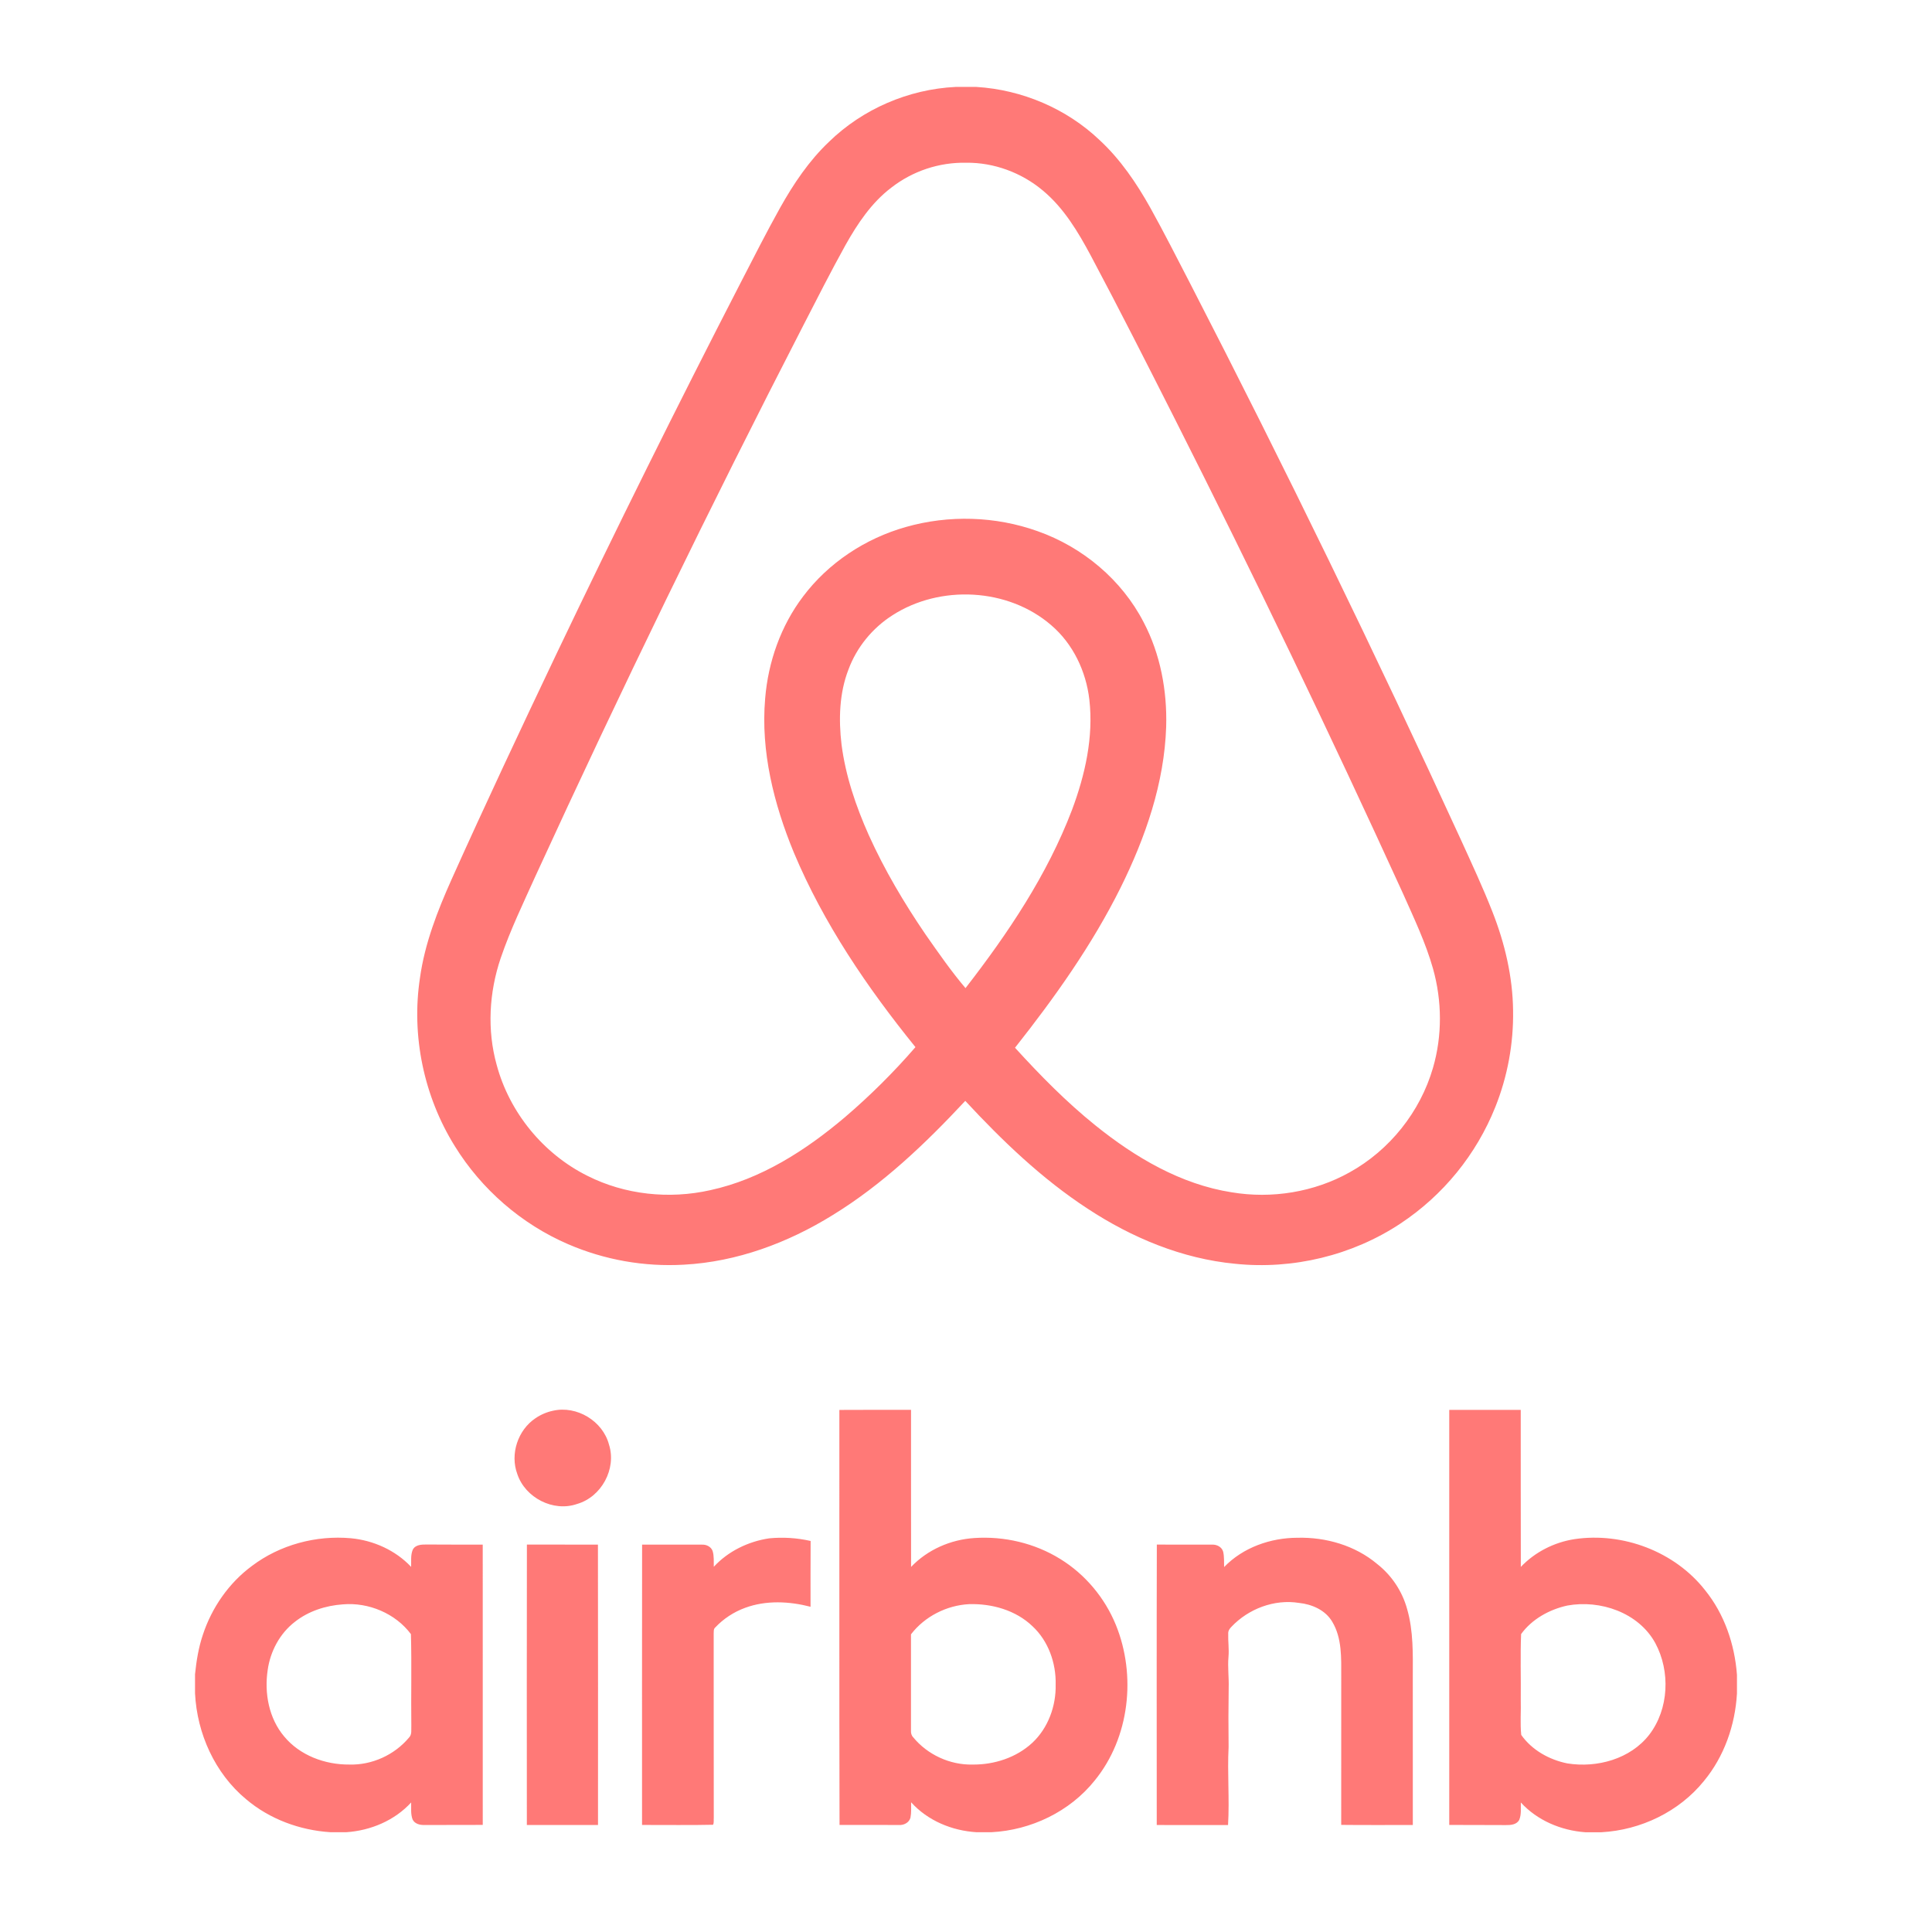 Airbnb logo png.